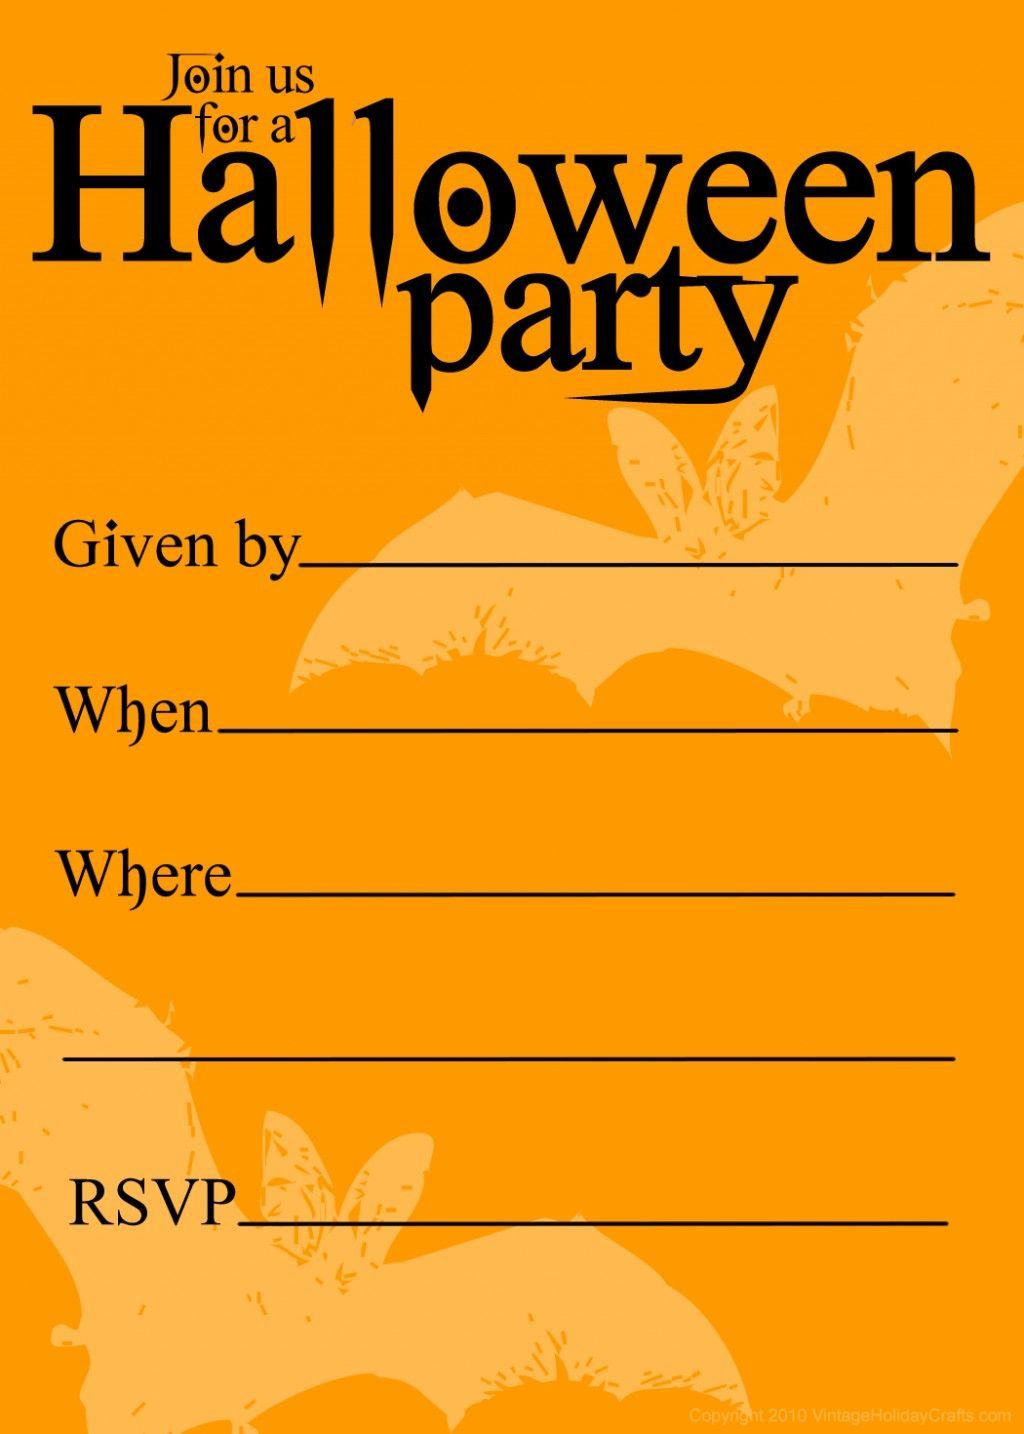 001 Incredible Halloween Party Invite Template Inspiration  Spooky Invitation Free Printable Birthday DownloadFull